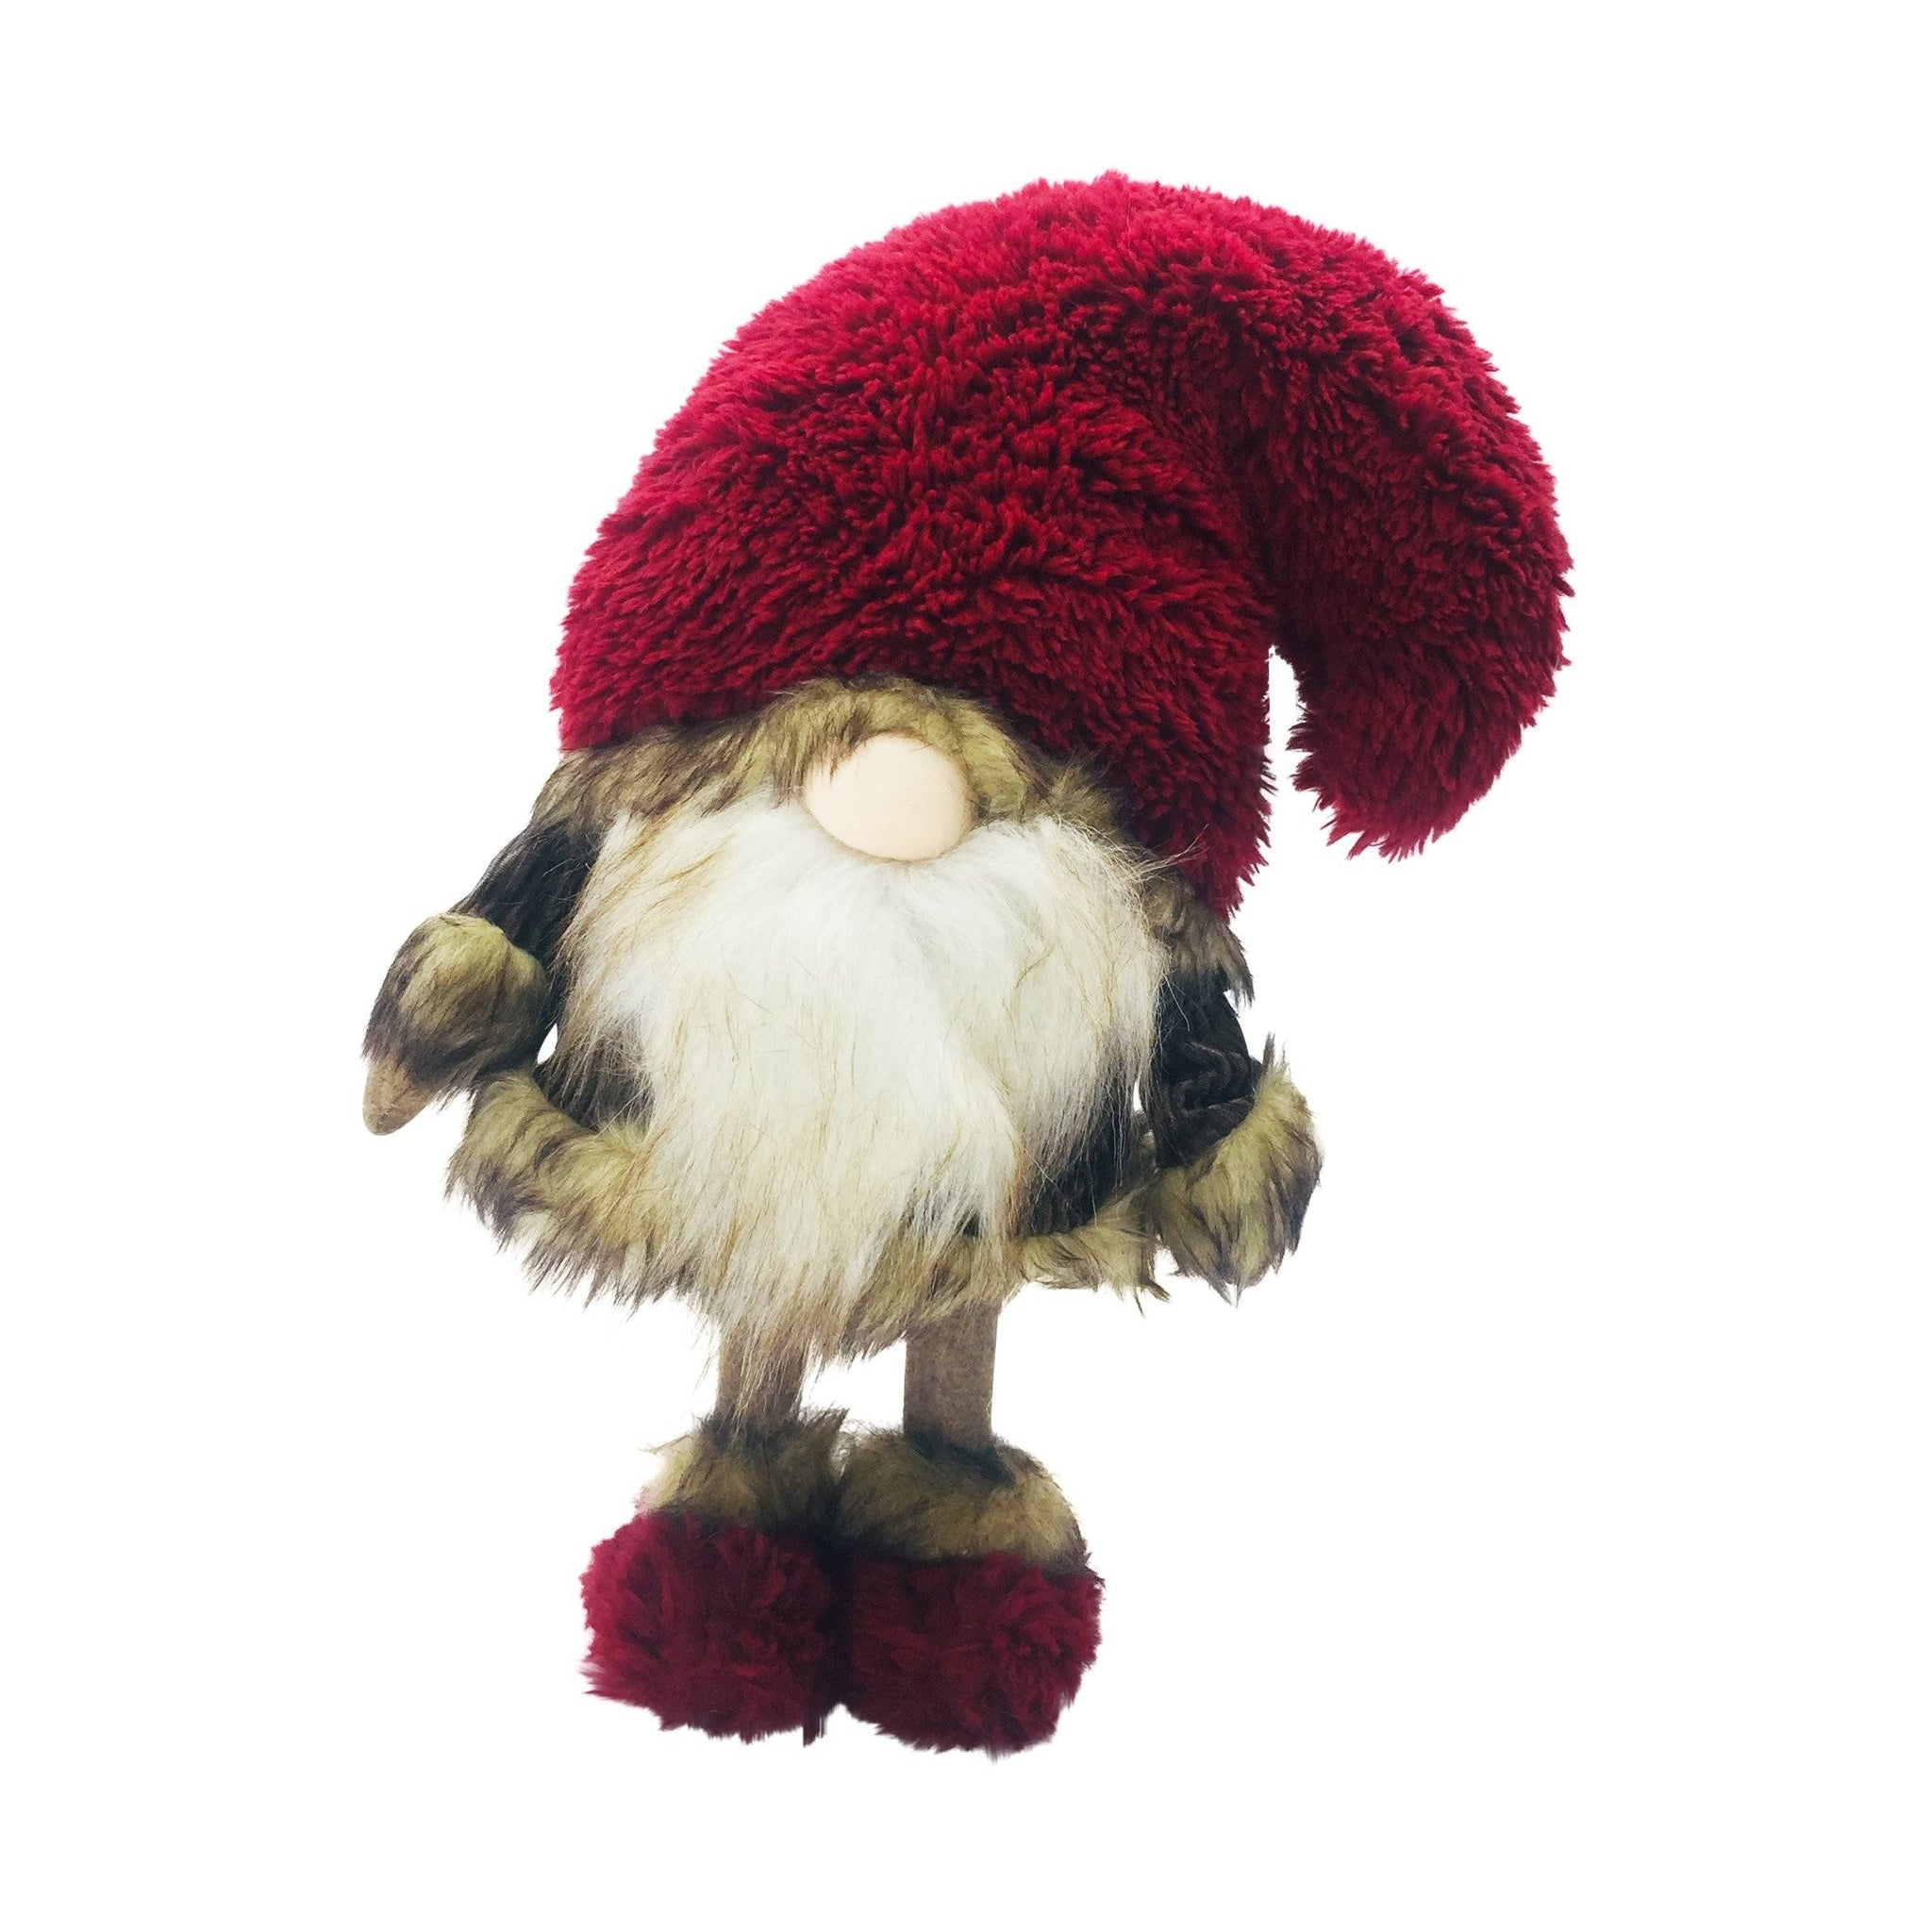 RED FURR HAT BROWN FABRIC GNOME